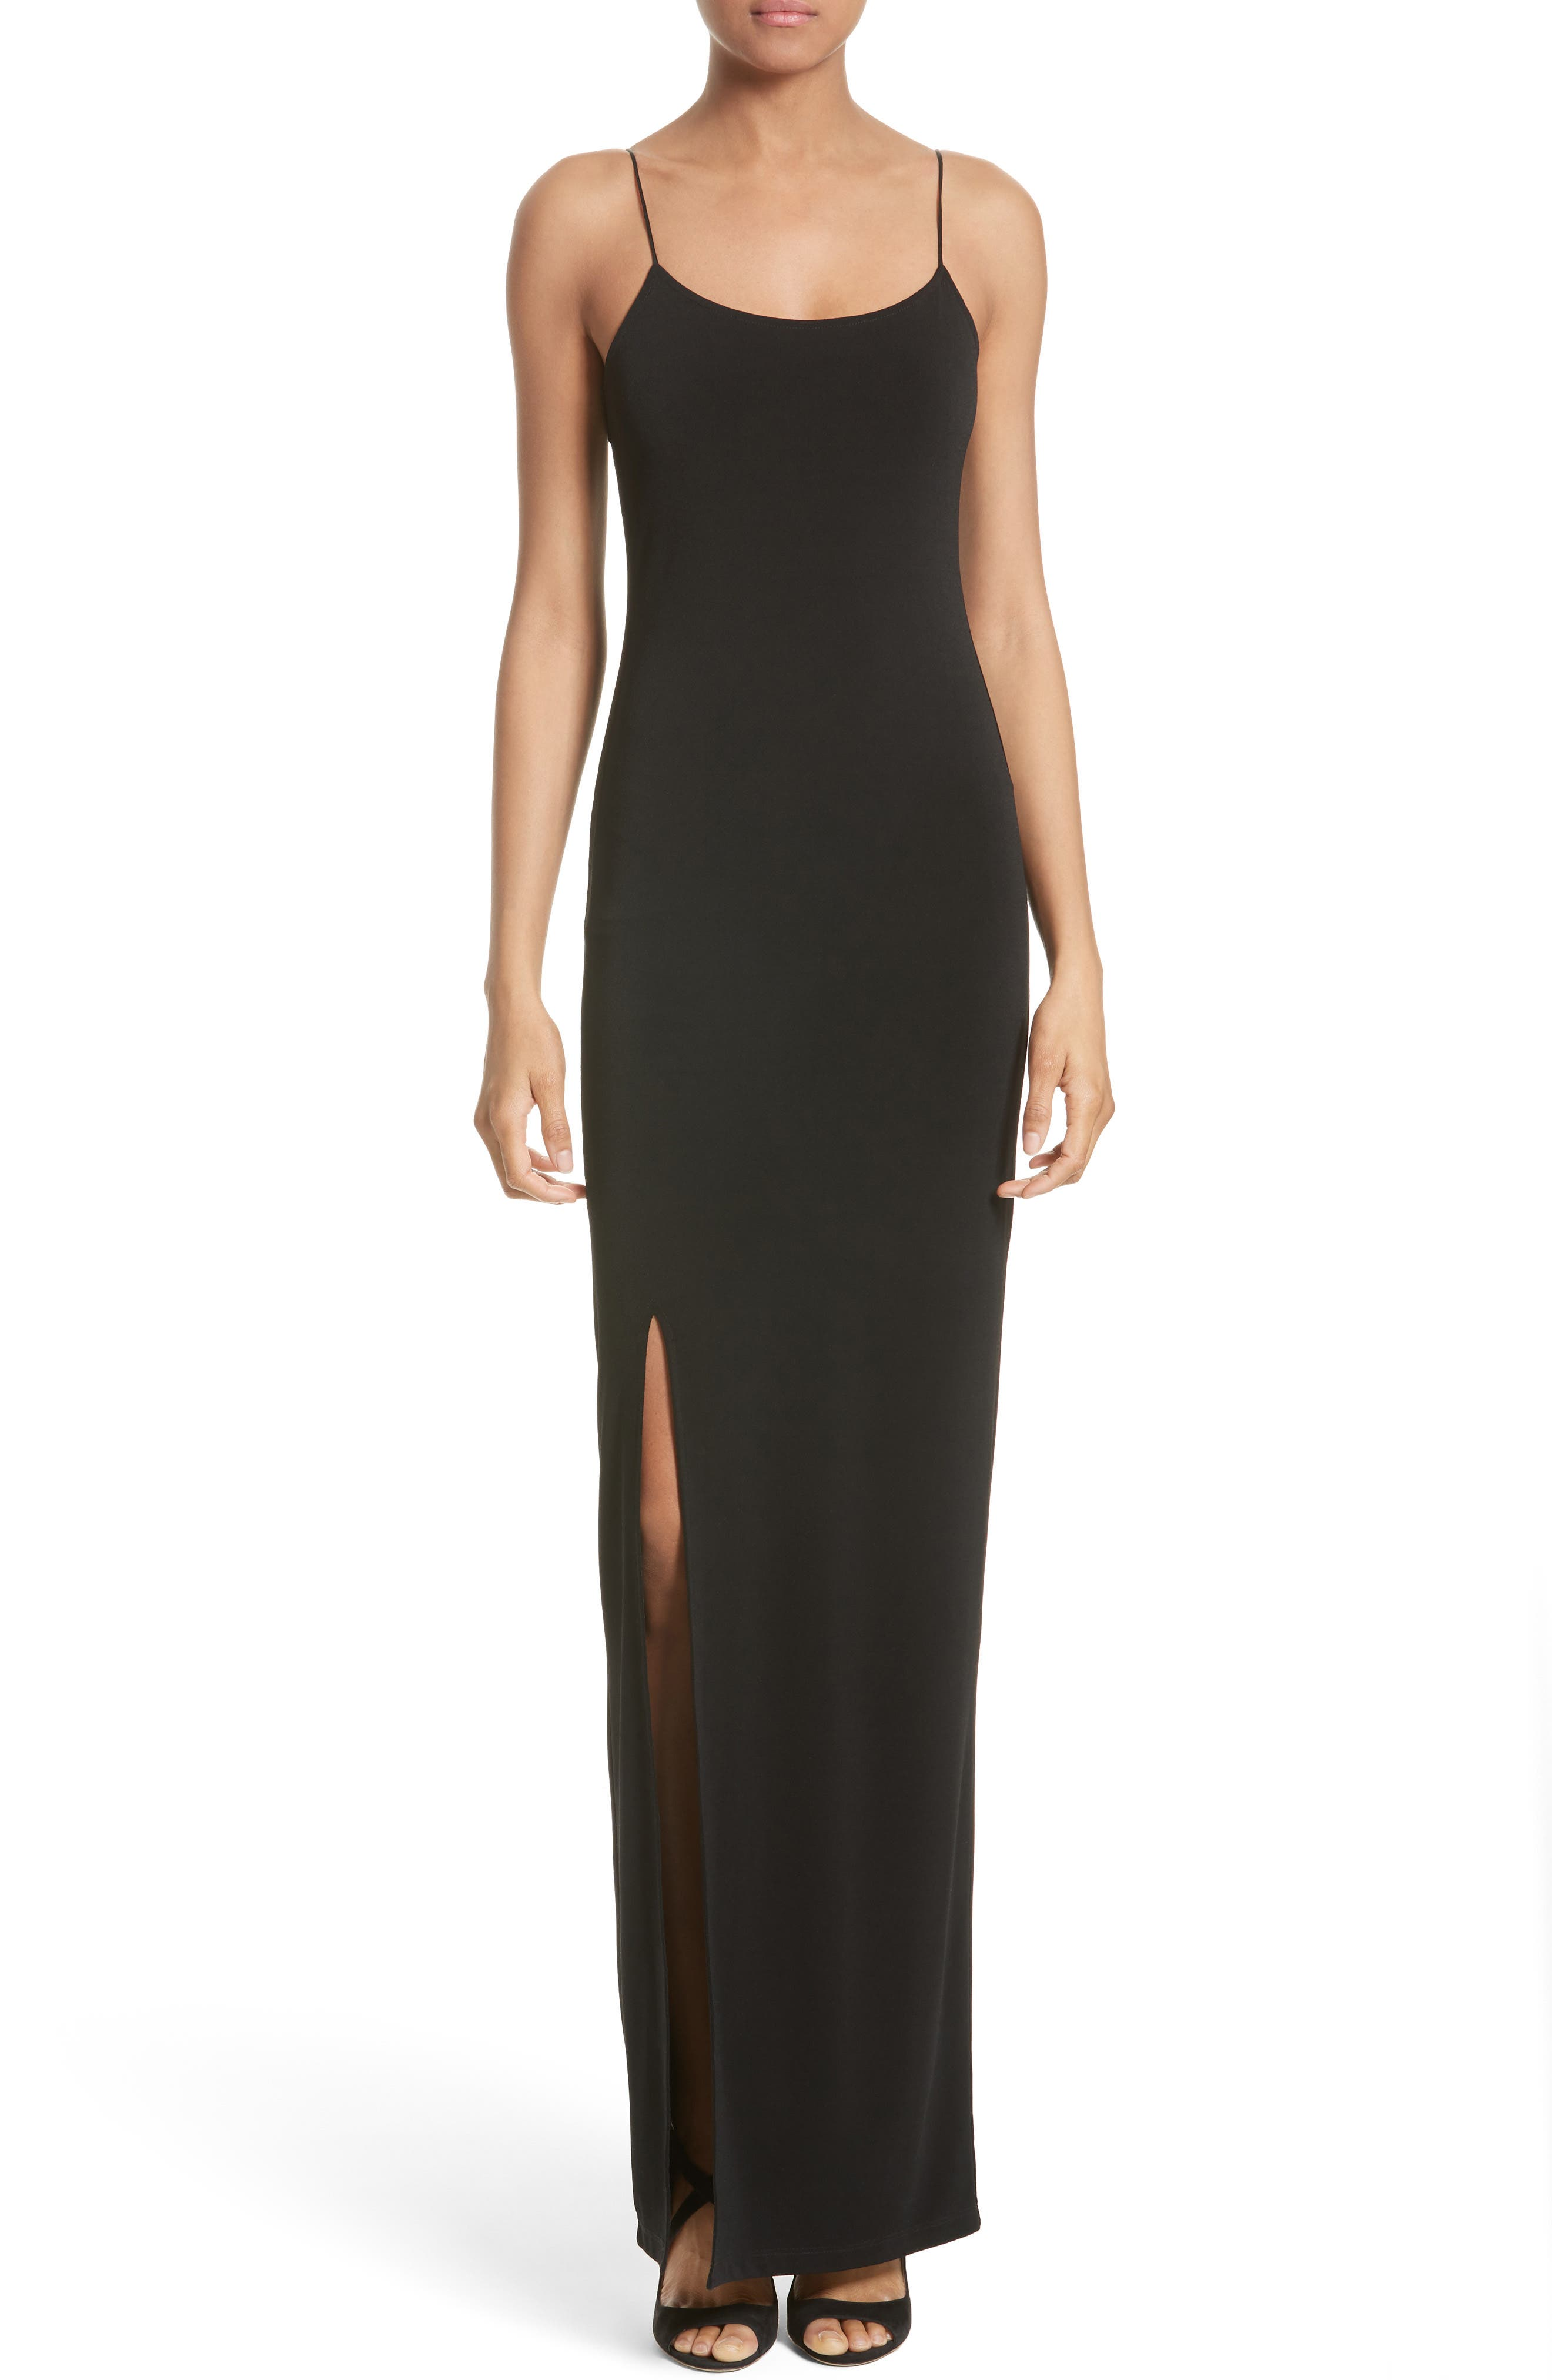 Alternate Image 1 Selected - Alice + Olivia Addie Stretch Knit Maxi Dress